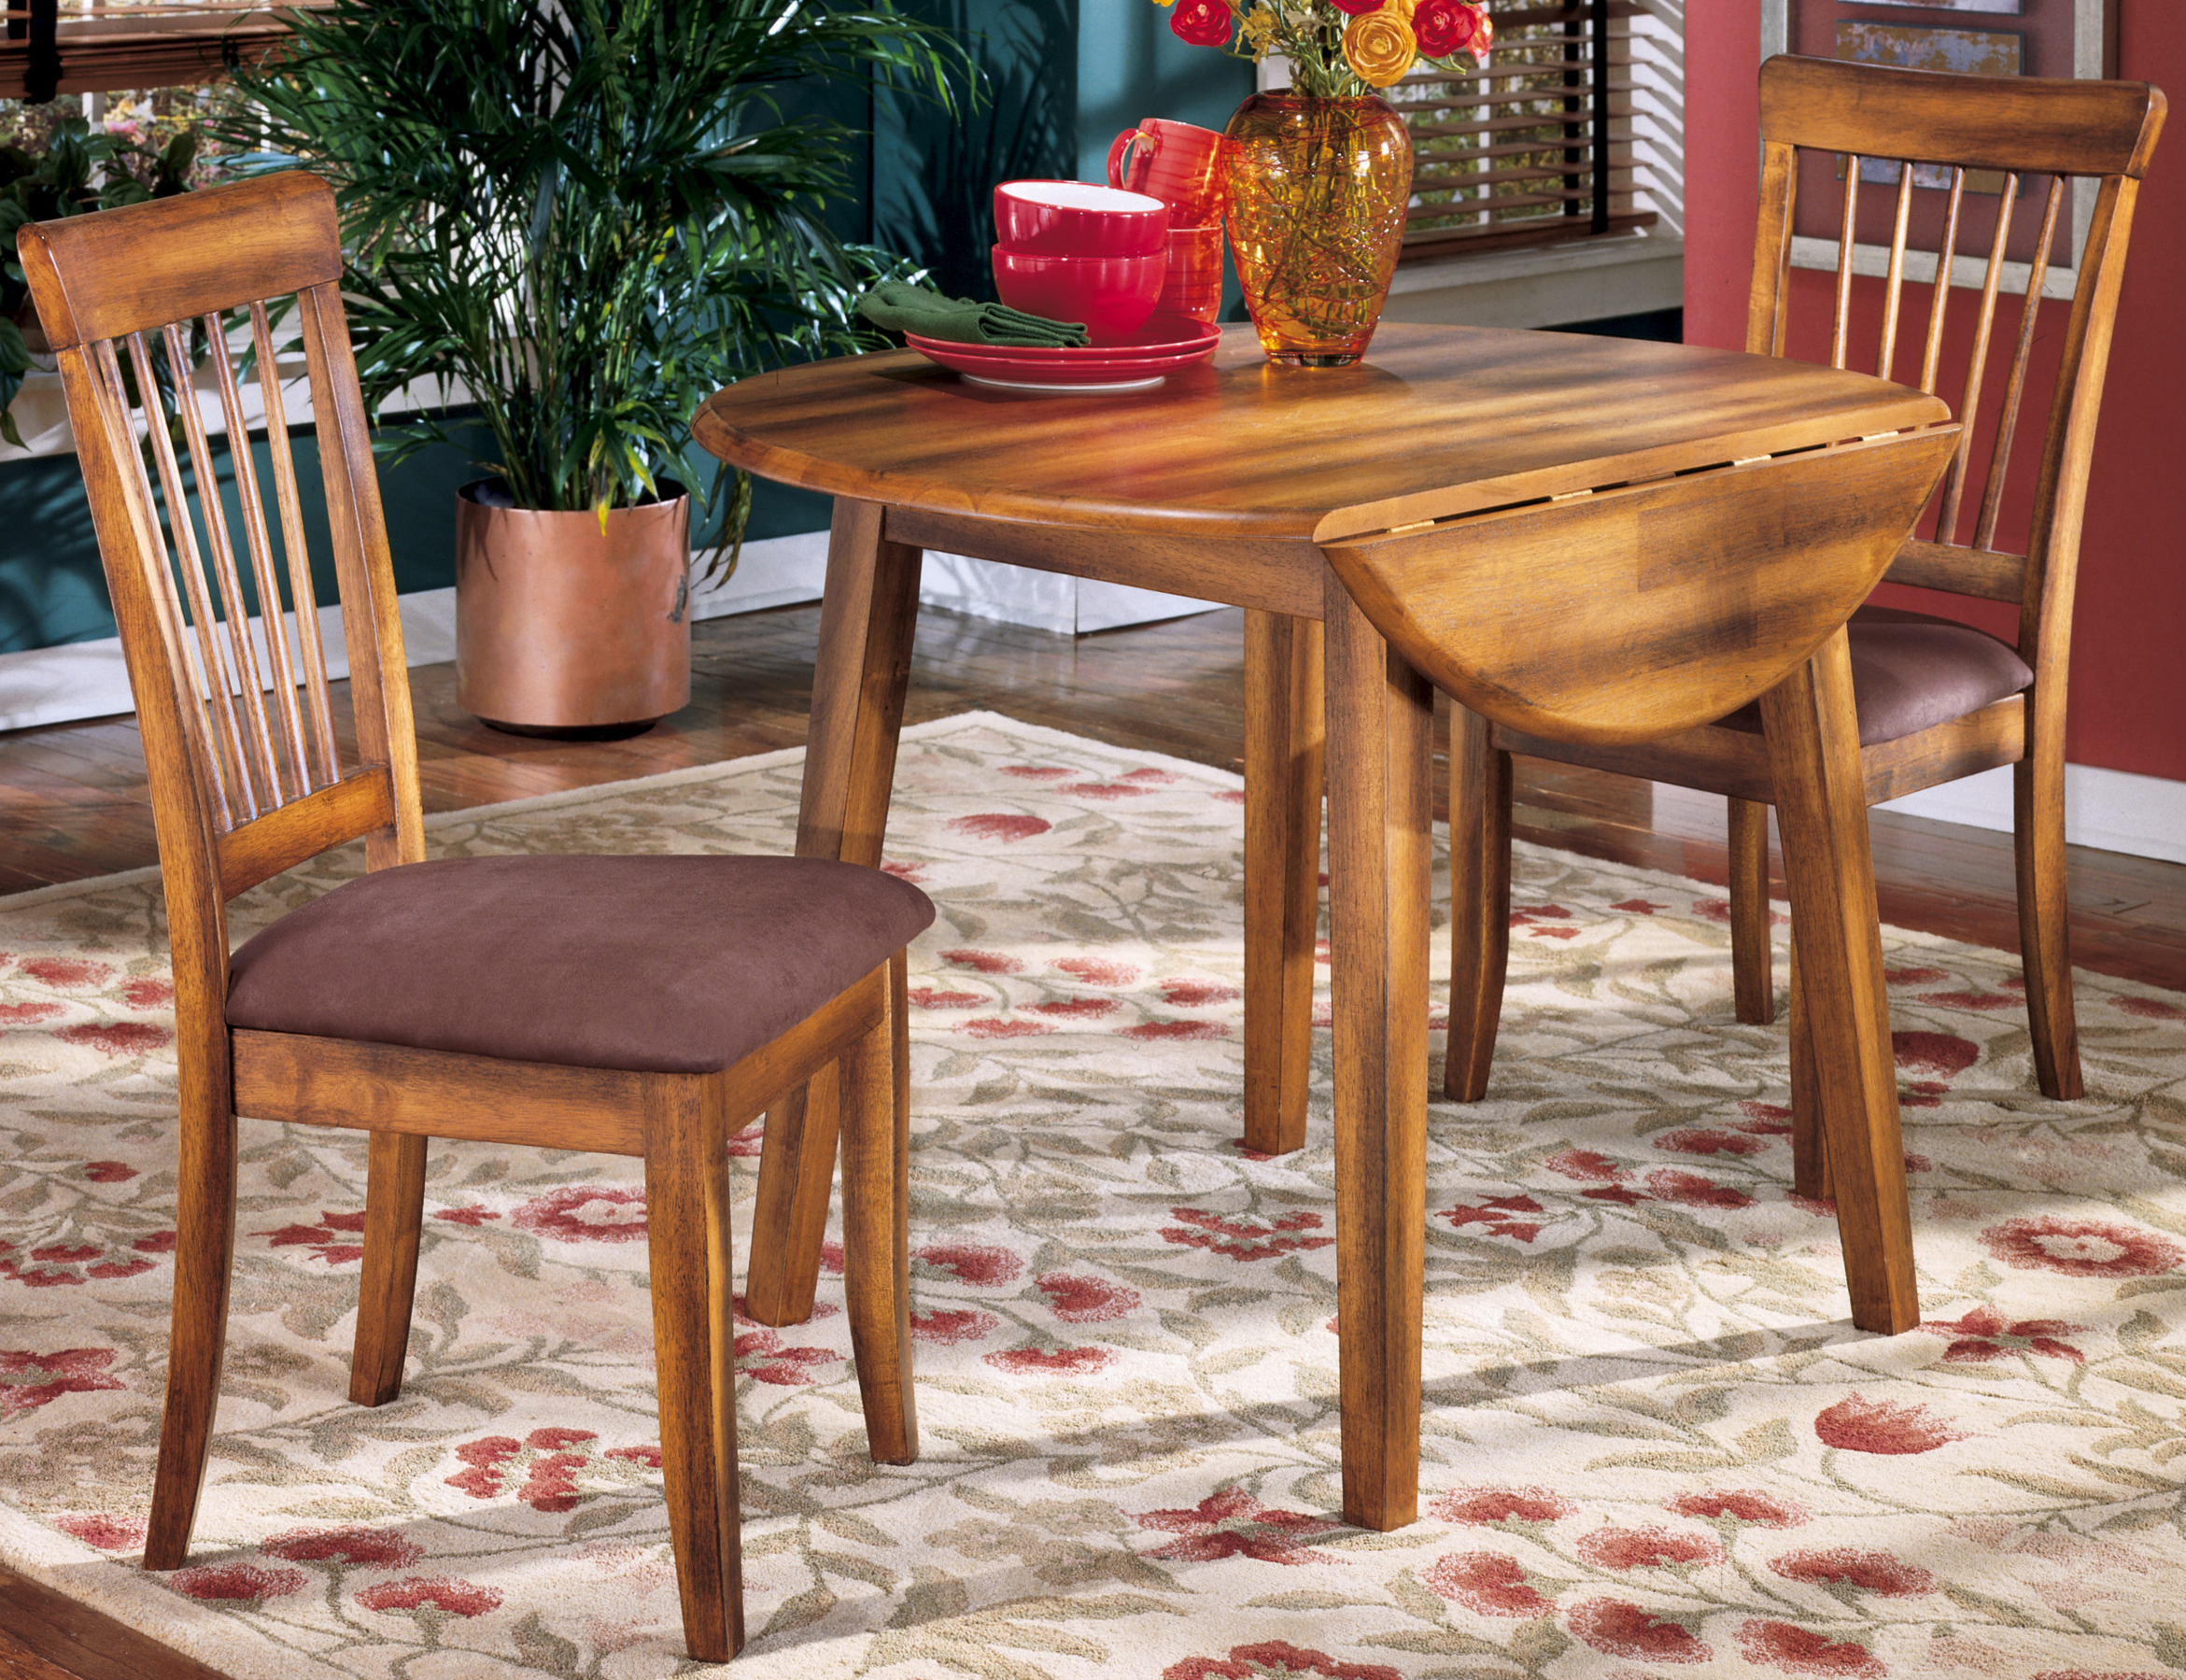 drop-leaf table side chairs